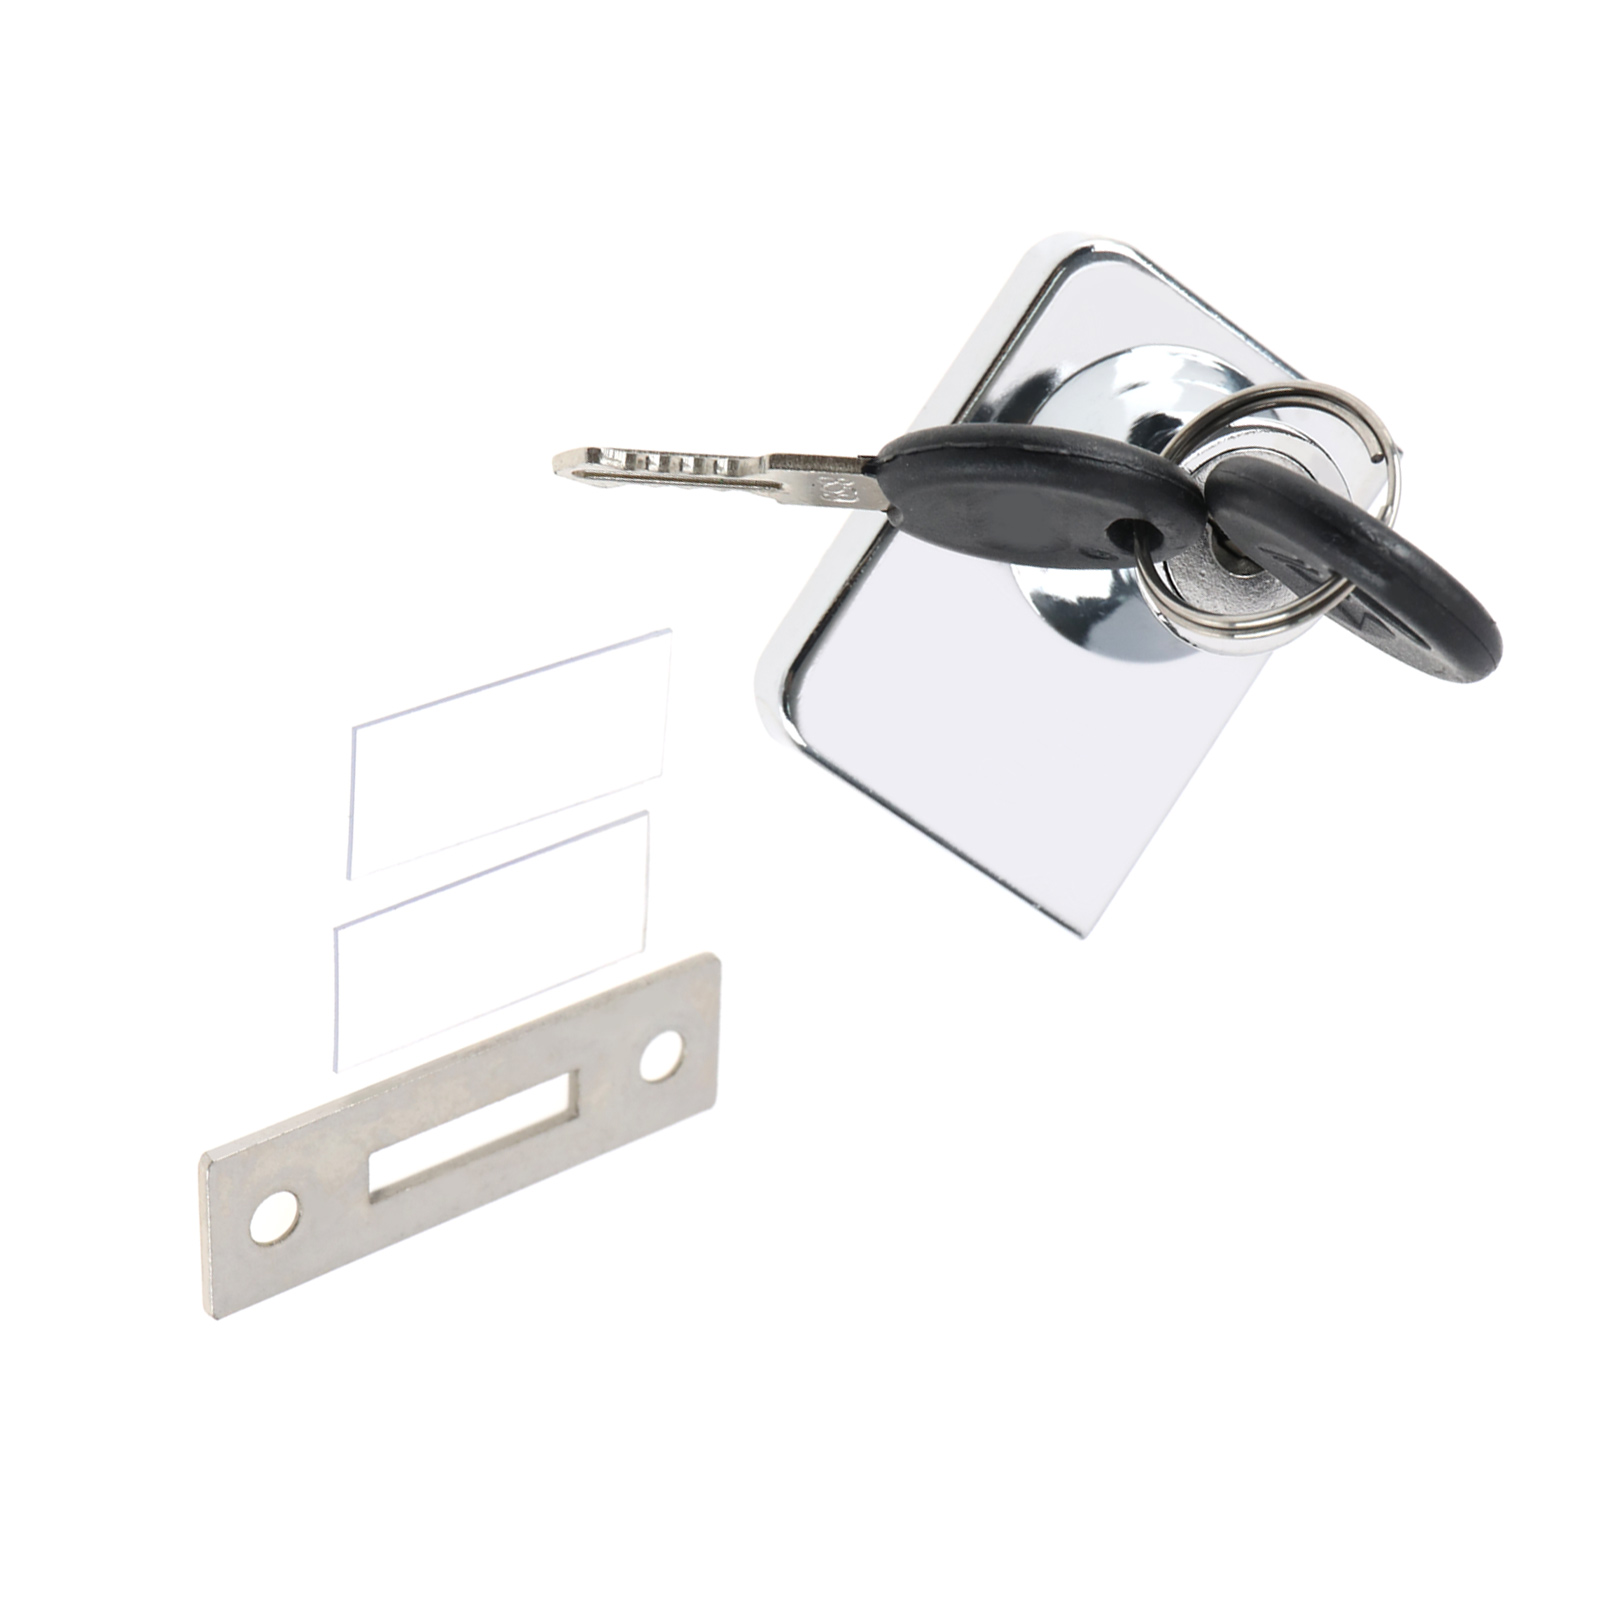 Glass Cabinet Locks For Ikea ~ Glass Cabinet Chrome Steel Lock Hinged Display Cabinets for IKEA